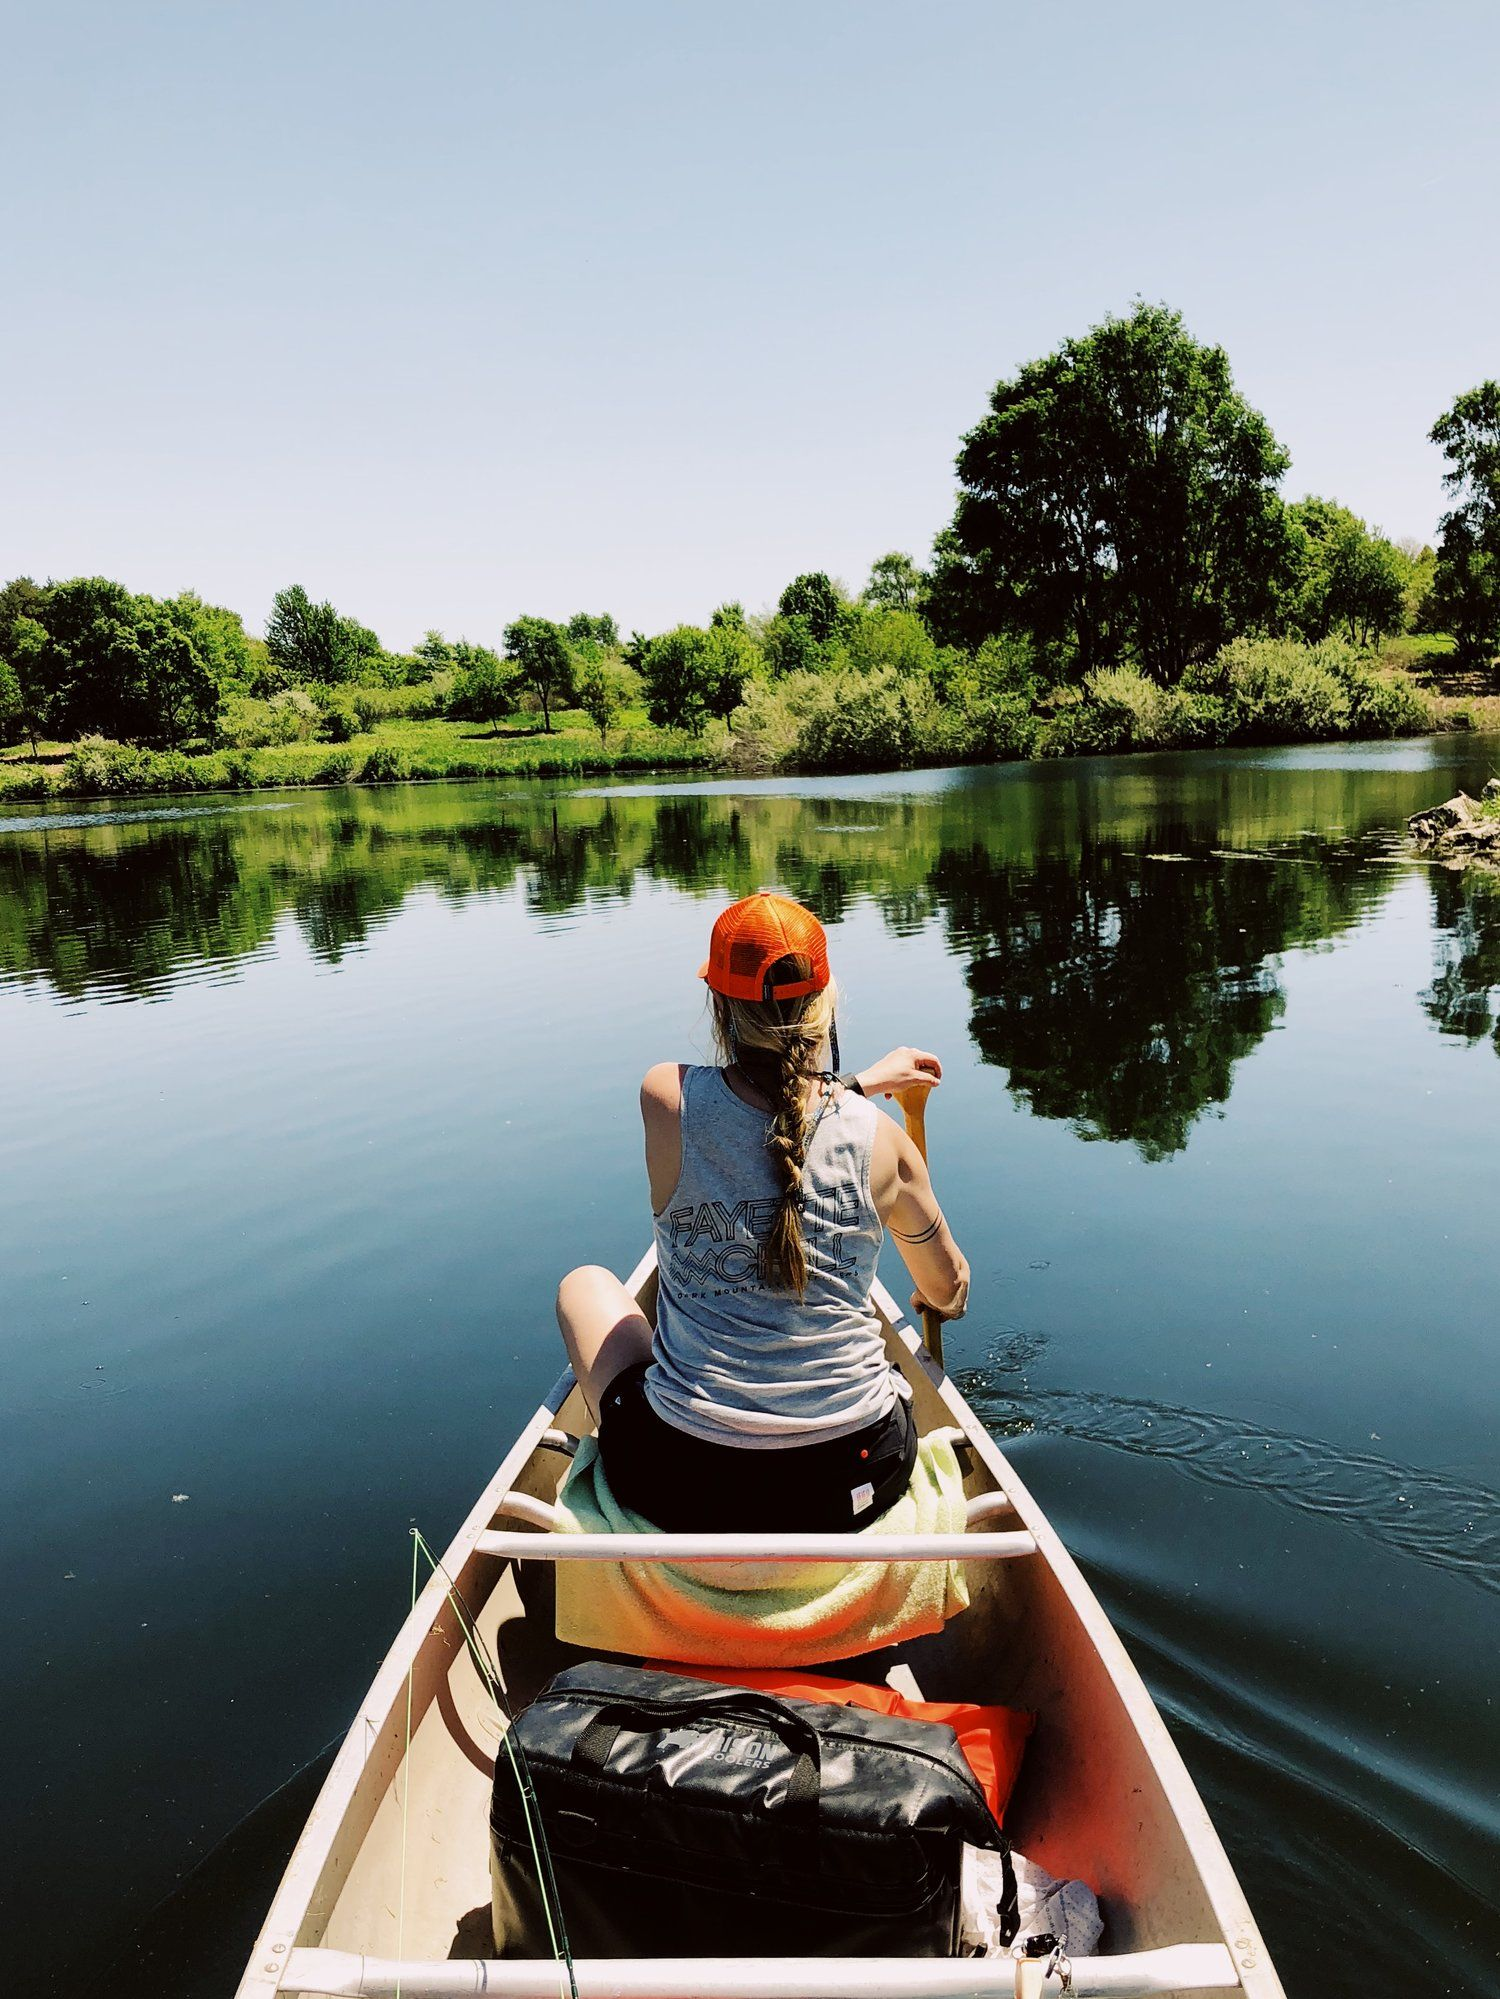 Camping and Canoeing Canoe, Camping, Boat